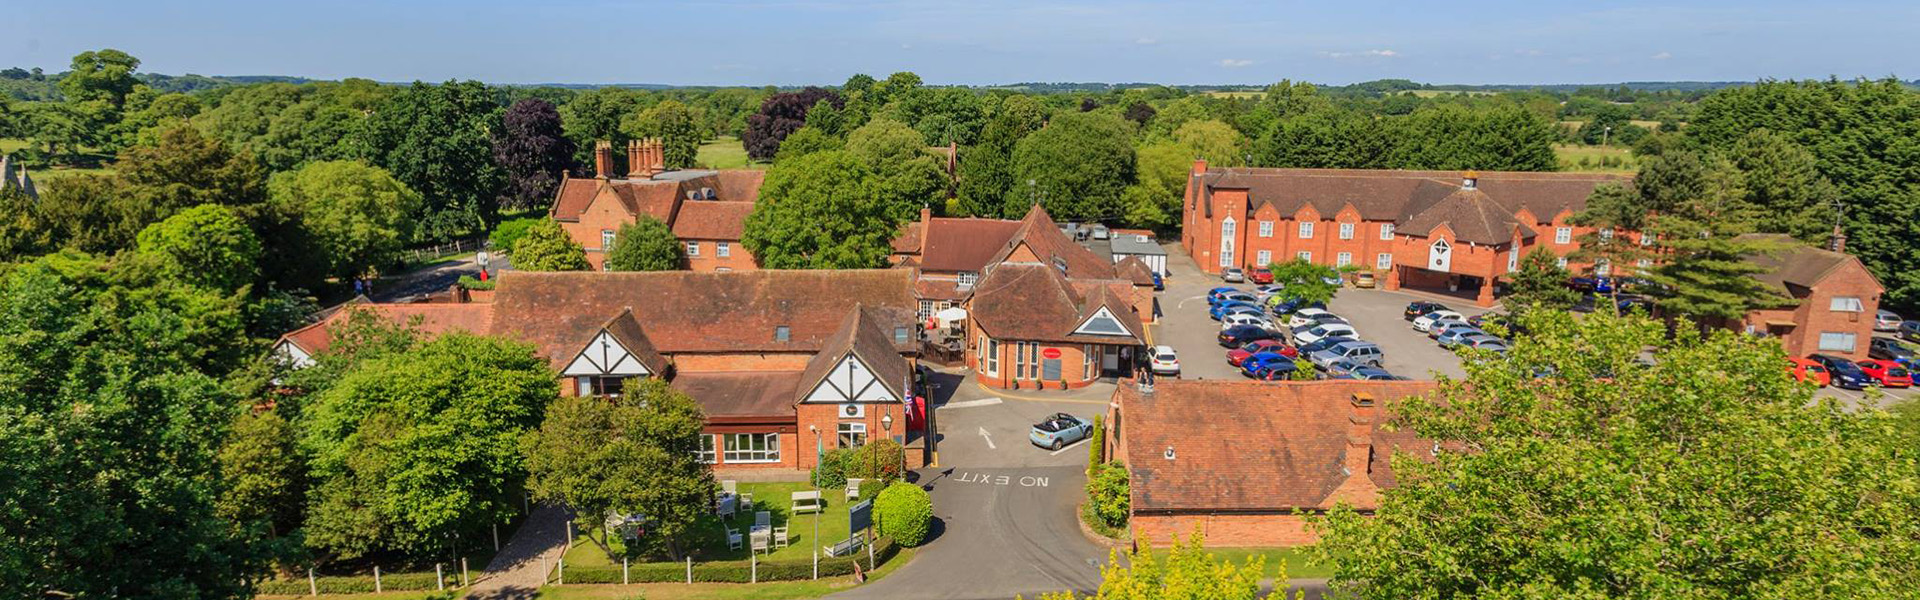 The Charlecote Pheasant Hotel from the air